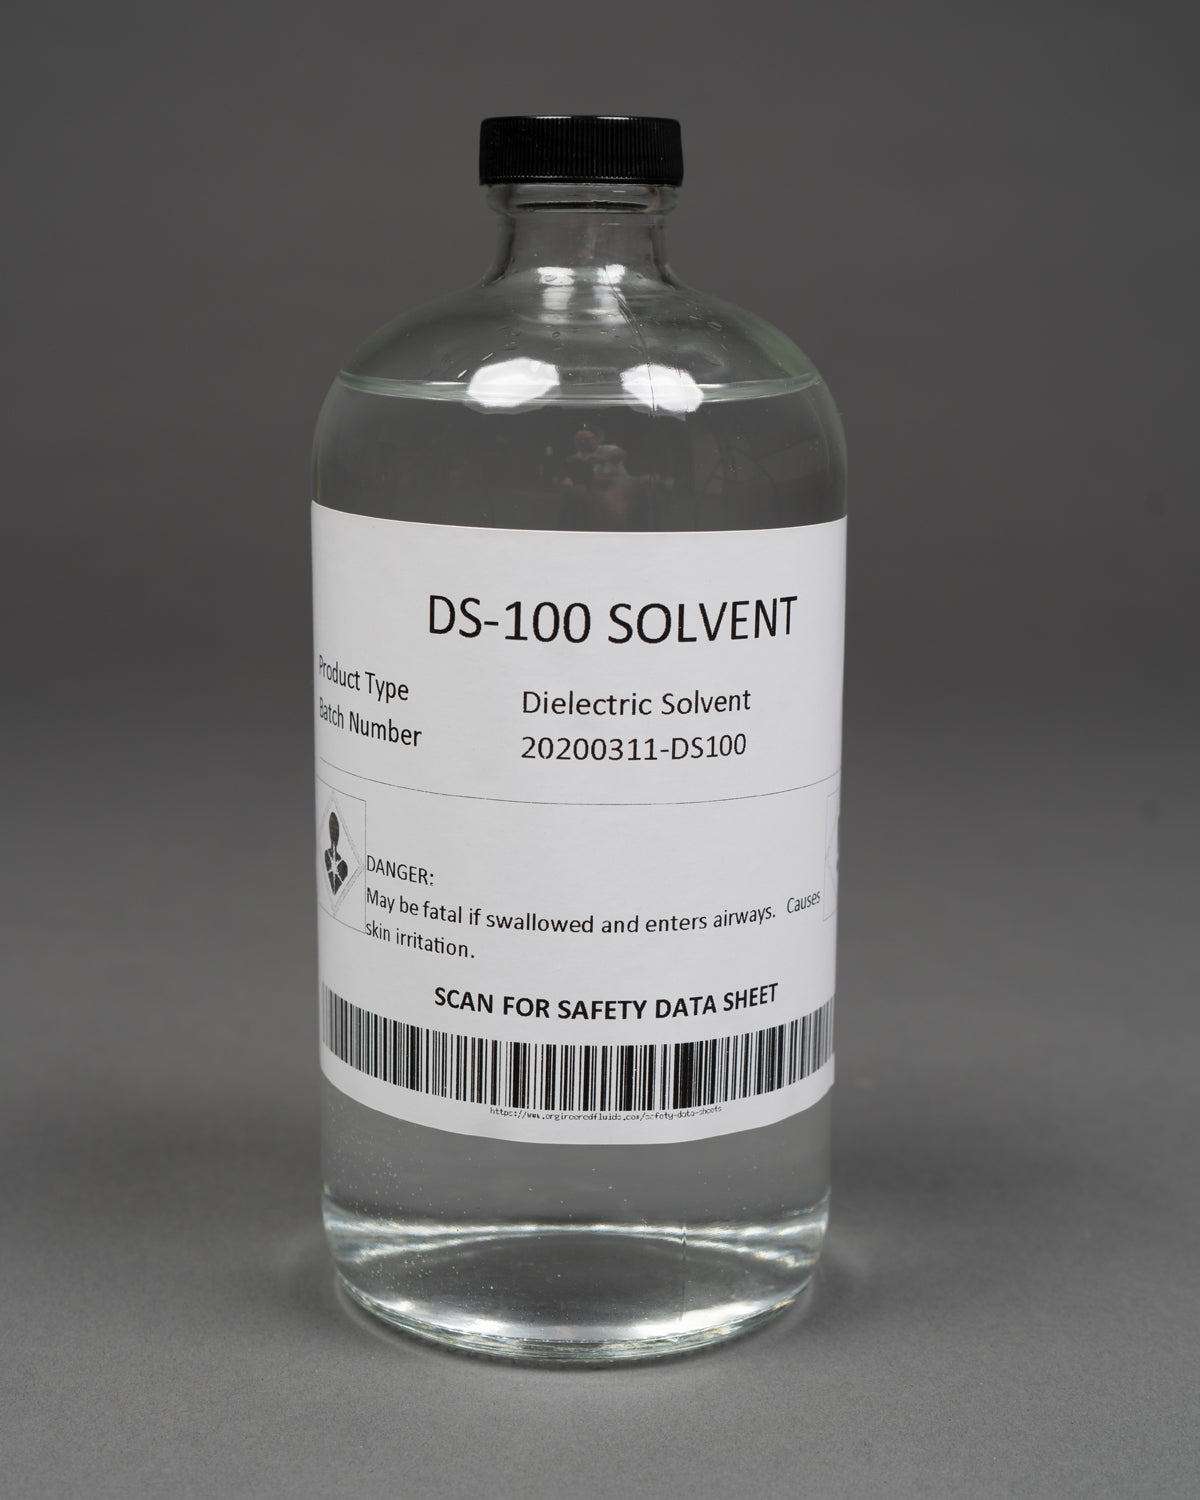 Can this be used in an ultrasonic cleaner?